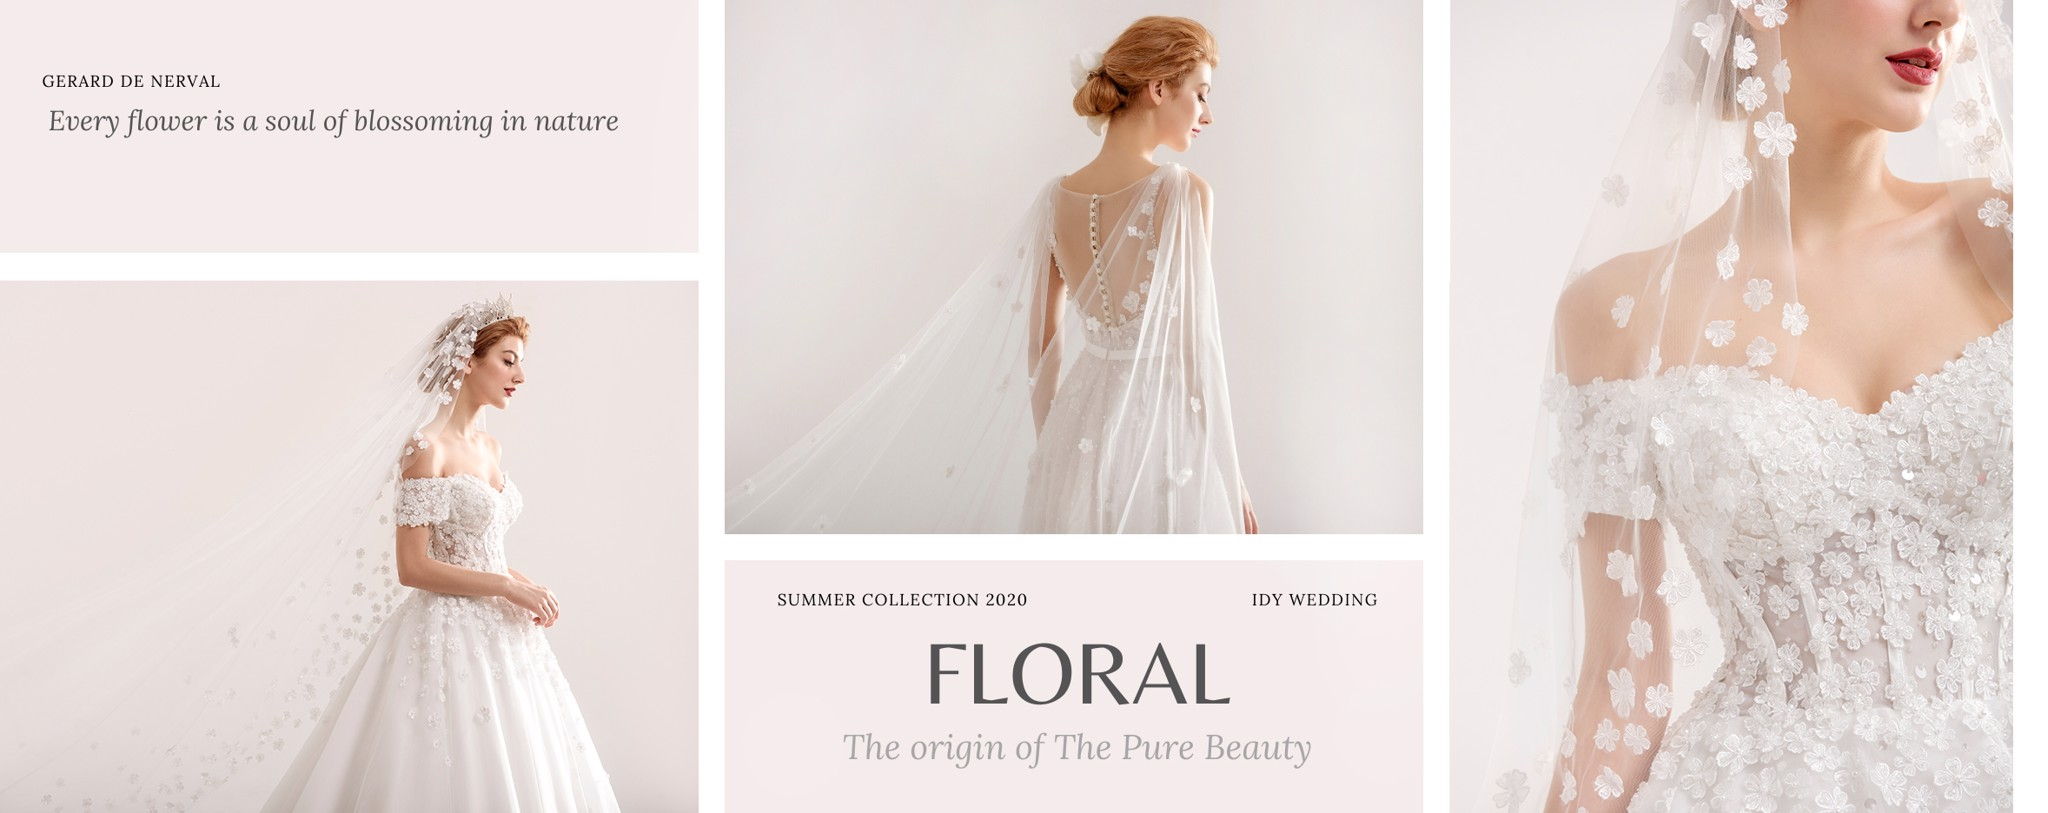 IDY WEDDING FLORAL COLLECTION 2020 KHỞI NGUYÊN CỦA VẺ ĐẸP THUẦN KHIẾT (The Origin of the Pure Beauty)